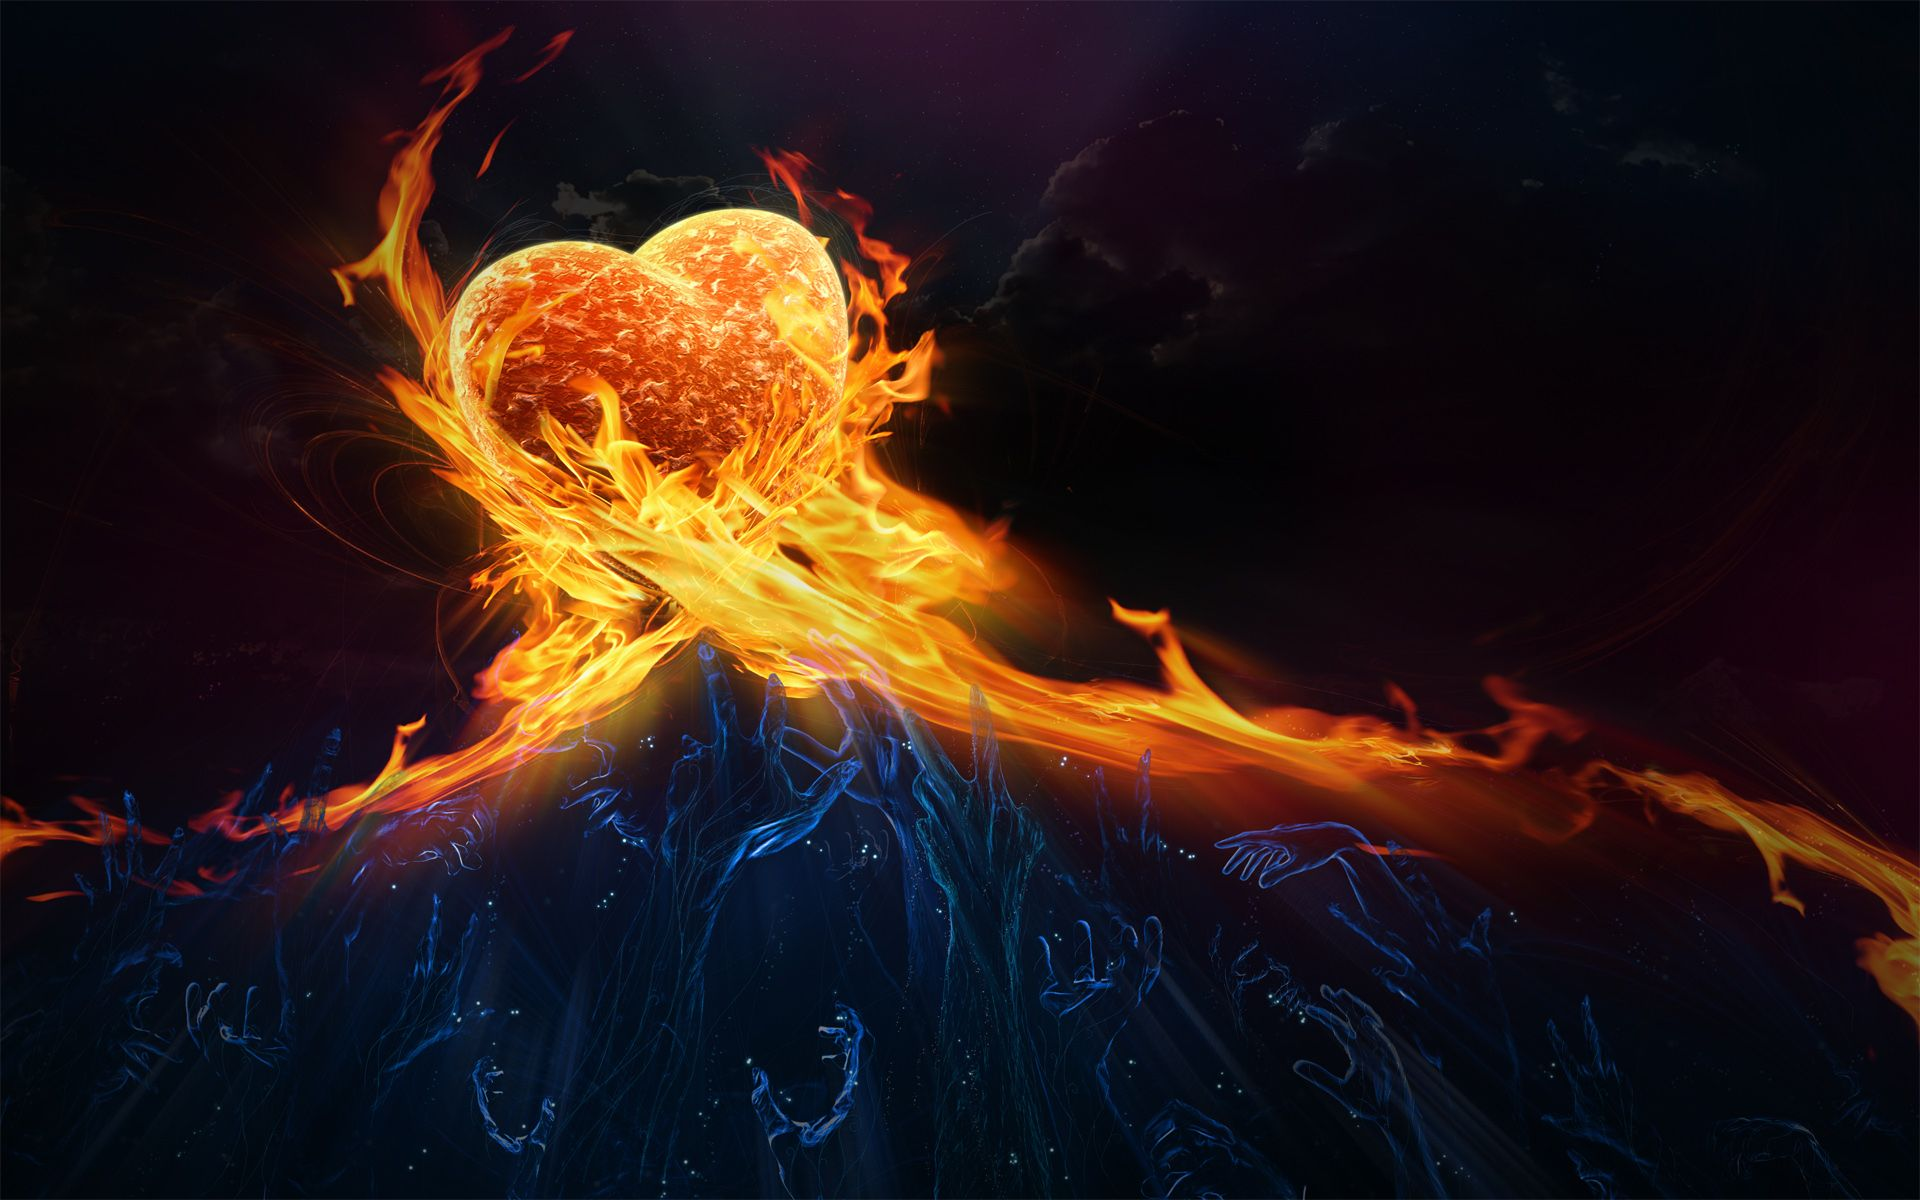 Twin Flame Heart Palpitations You Can Never Forget About The Feeling When You Met Your Twin Do You Remember The Butterflie Fire Heart Heart Wallpaper Fire Art